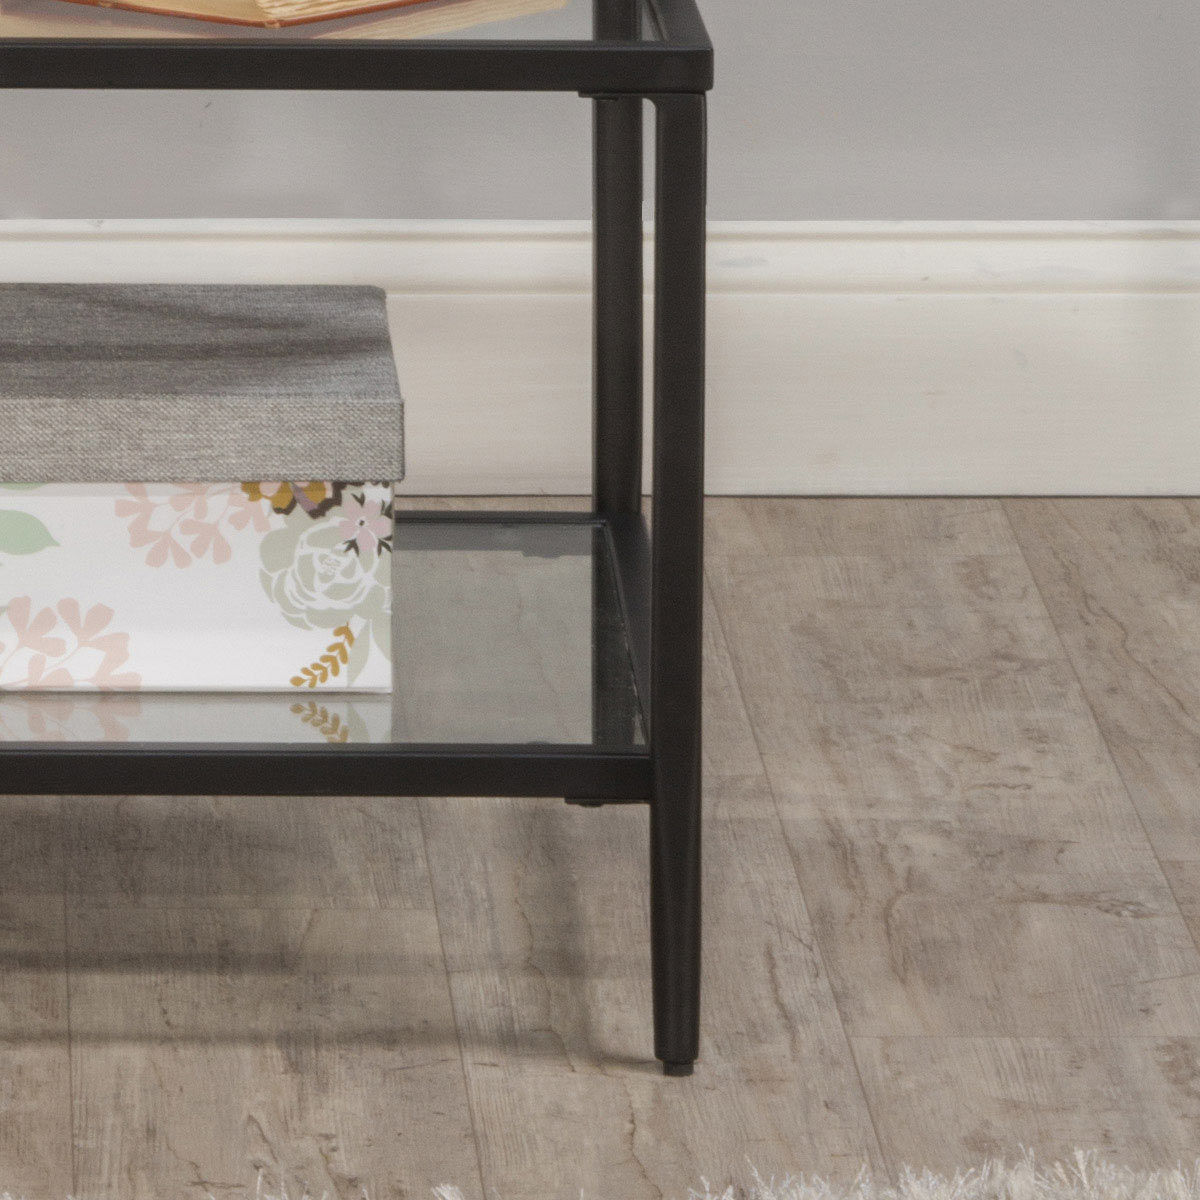 Hillsdale Harlan 3-Tier End Table with 2-Large and 1-Small Glass Shelves - Black